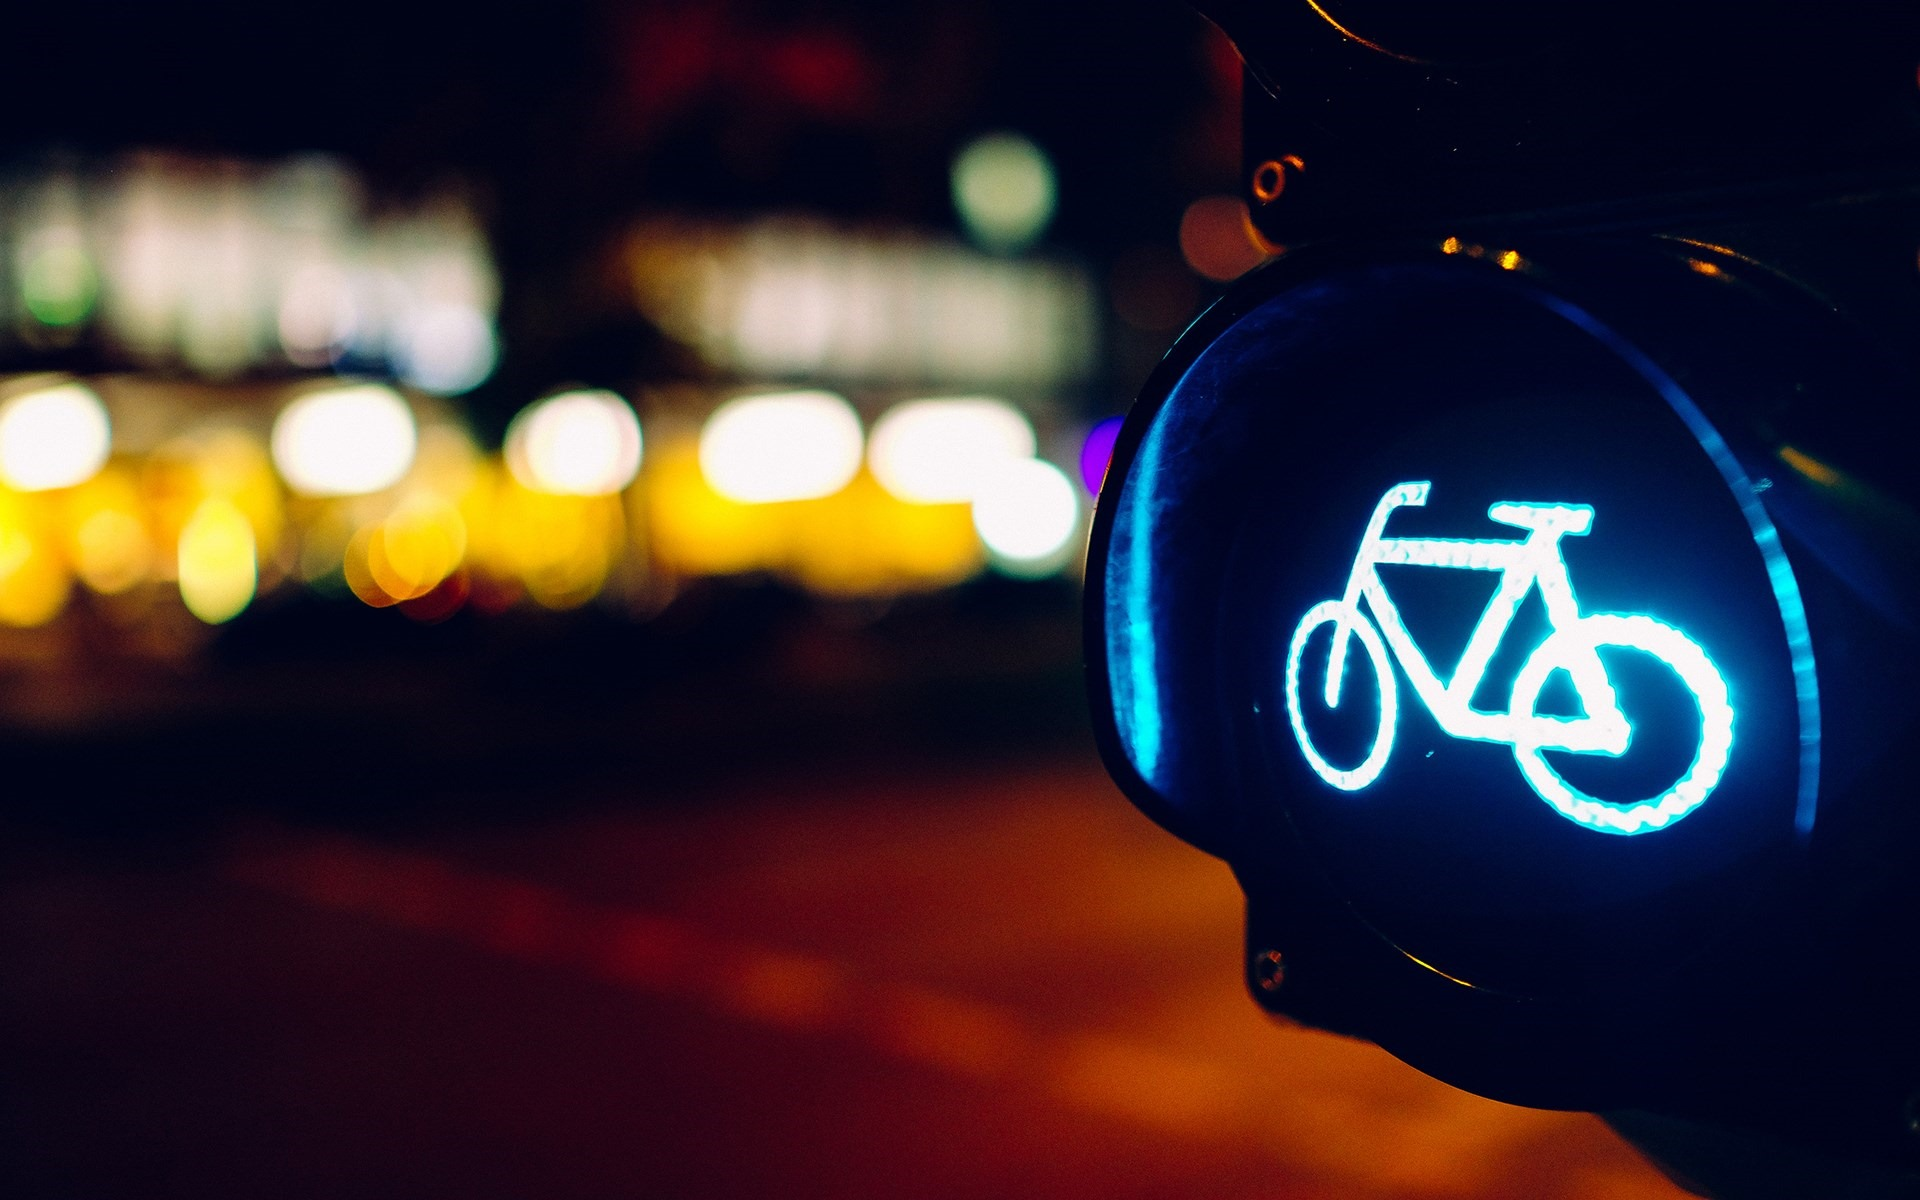 6982264-night-bicycle-lights-city